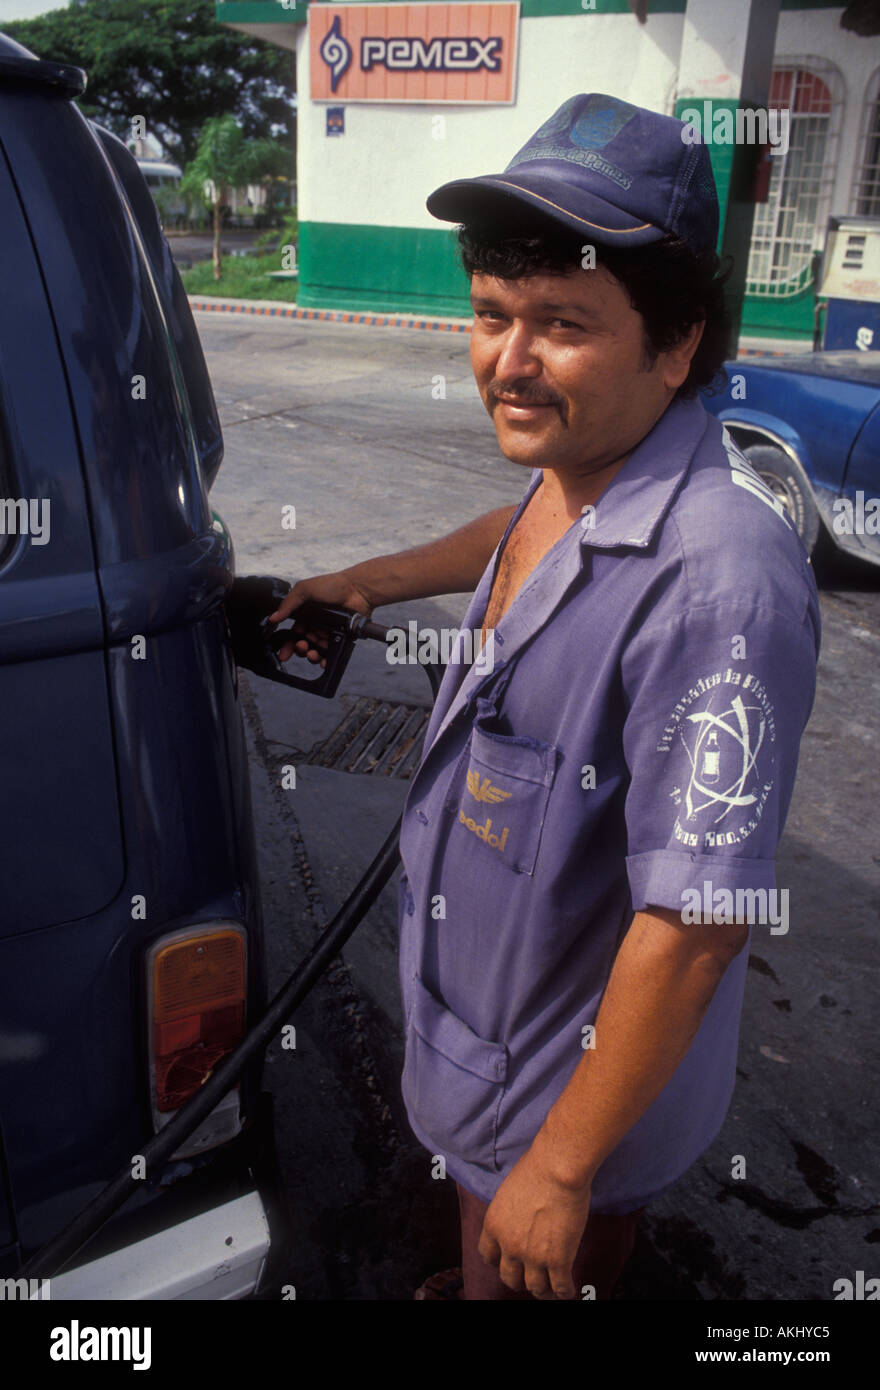 1 one mexican man gas male gas station attendant pumping gas at gas station in san miguel cozumel island quintana roo state mexico